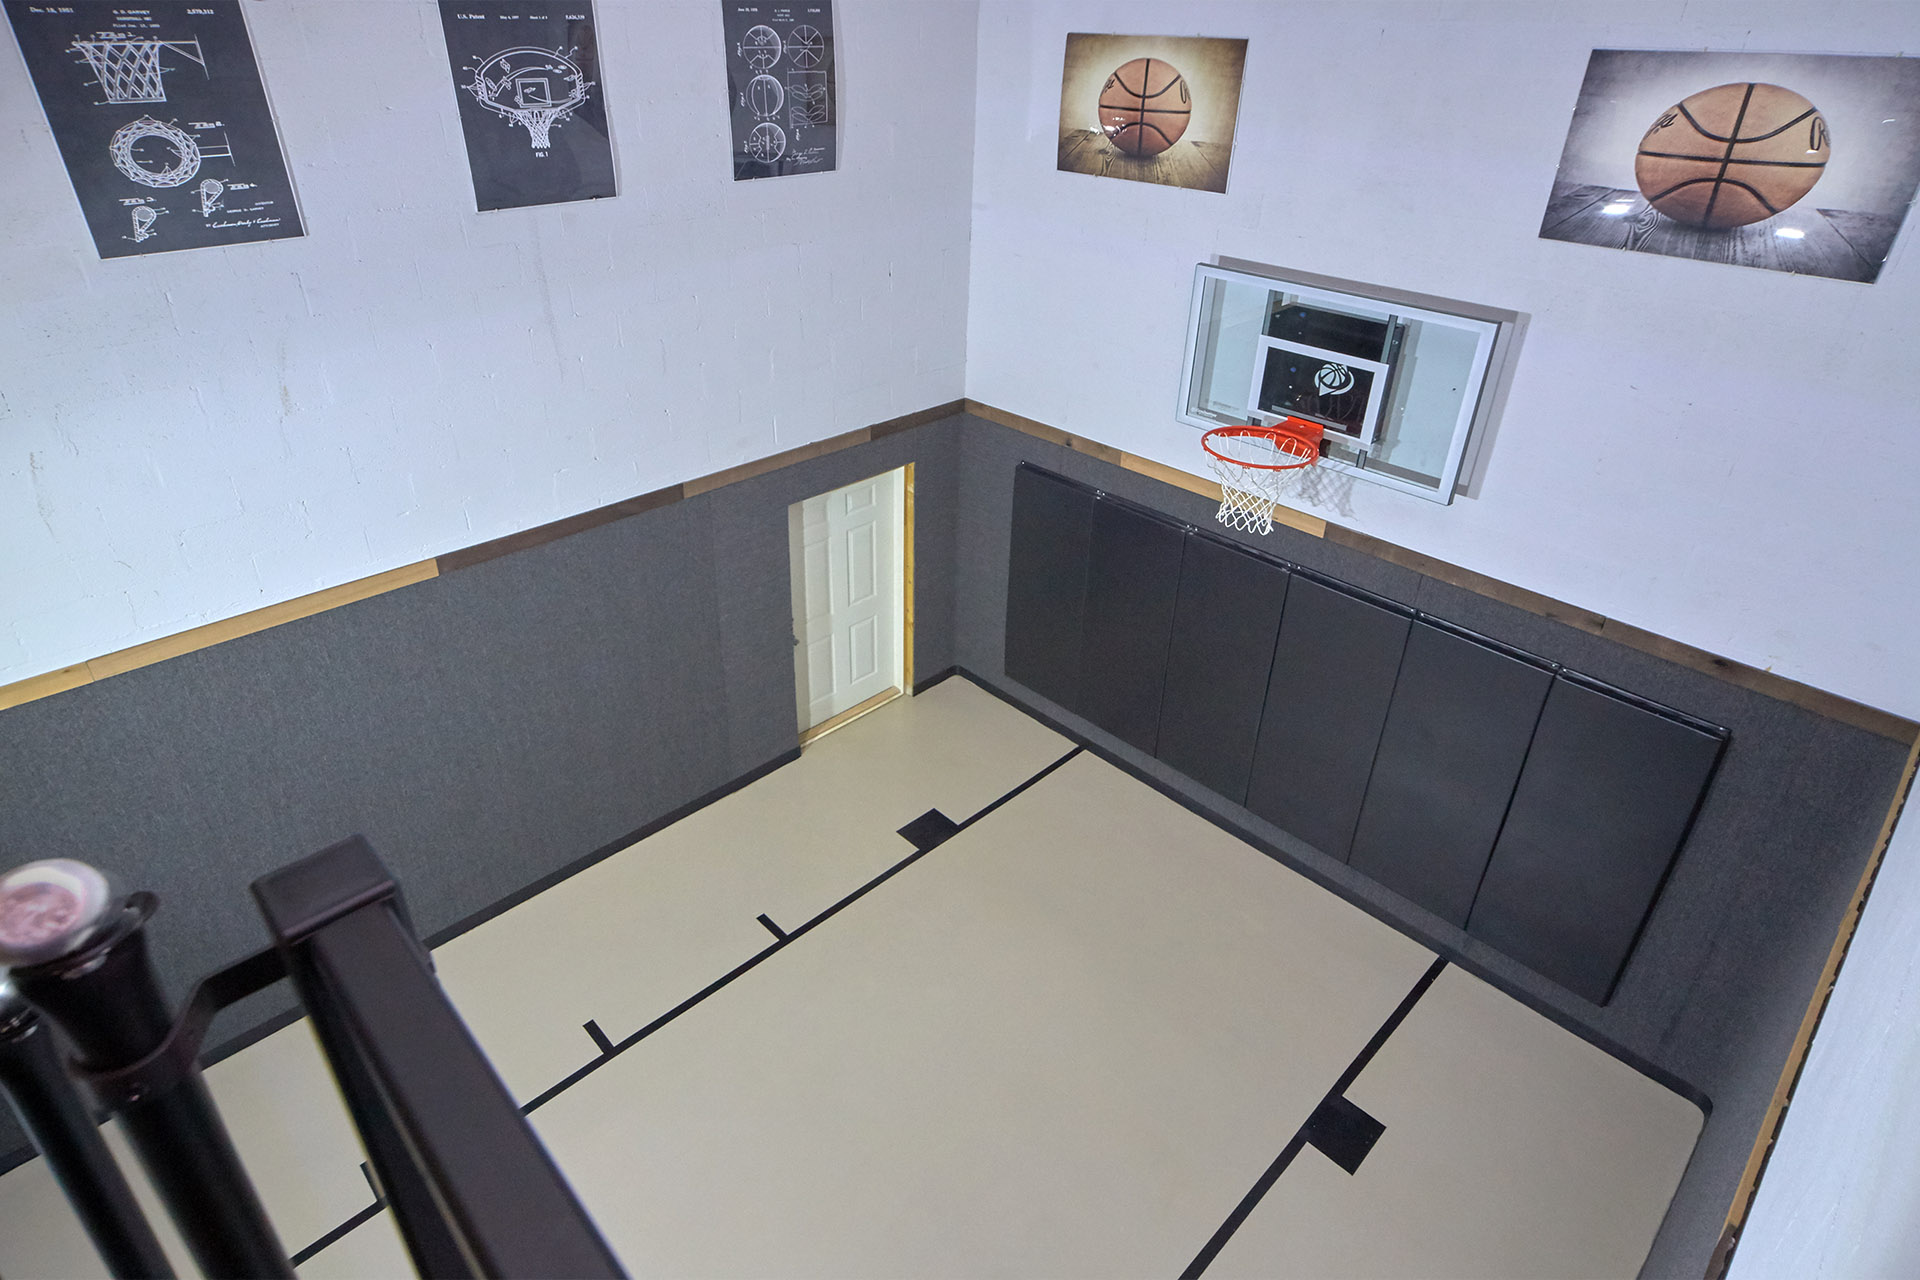 Top Notch Lodge Indoor Basketball Court Cabins For Rent In Sevierville Tennessee United States